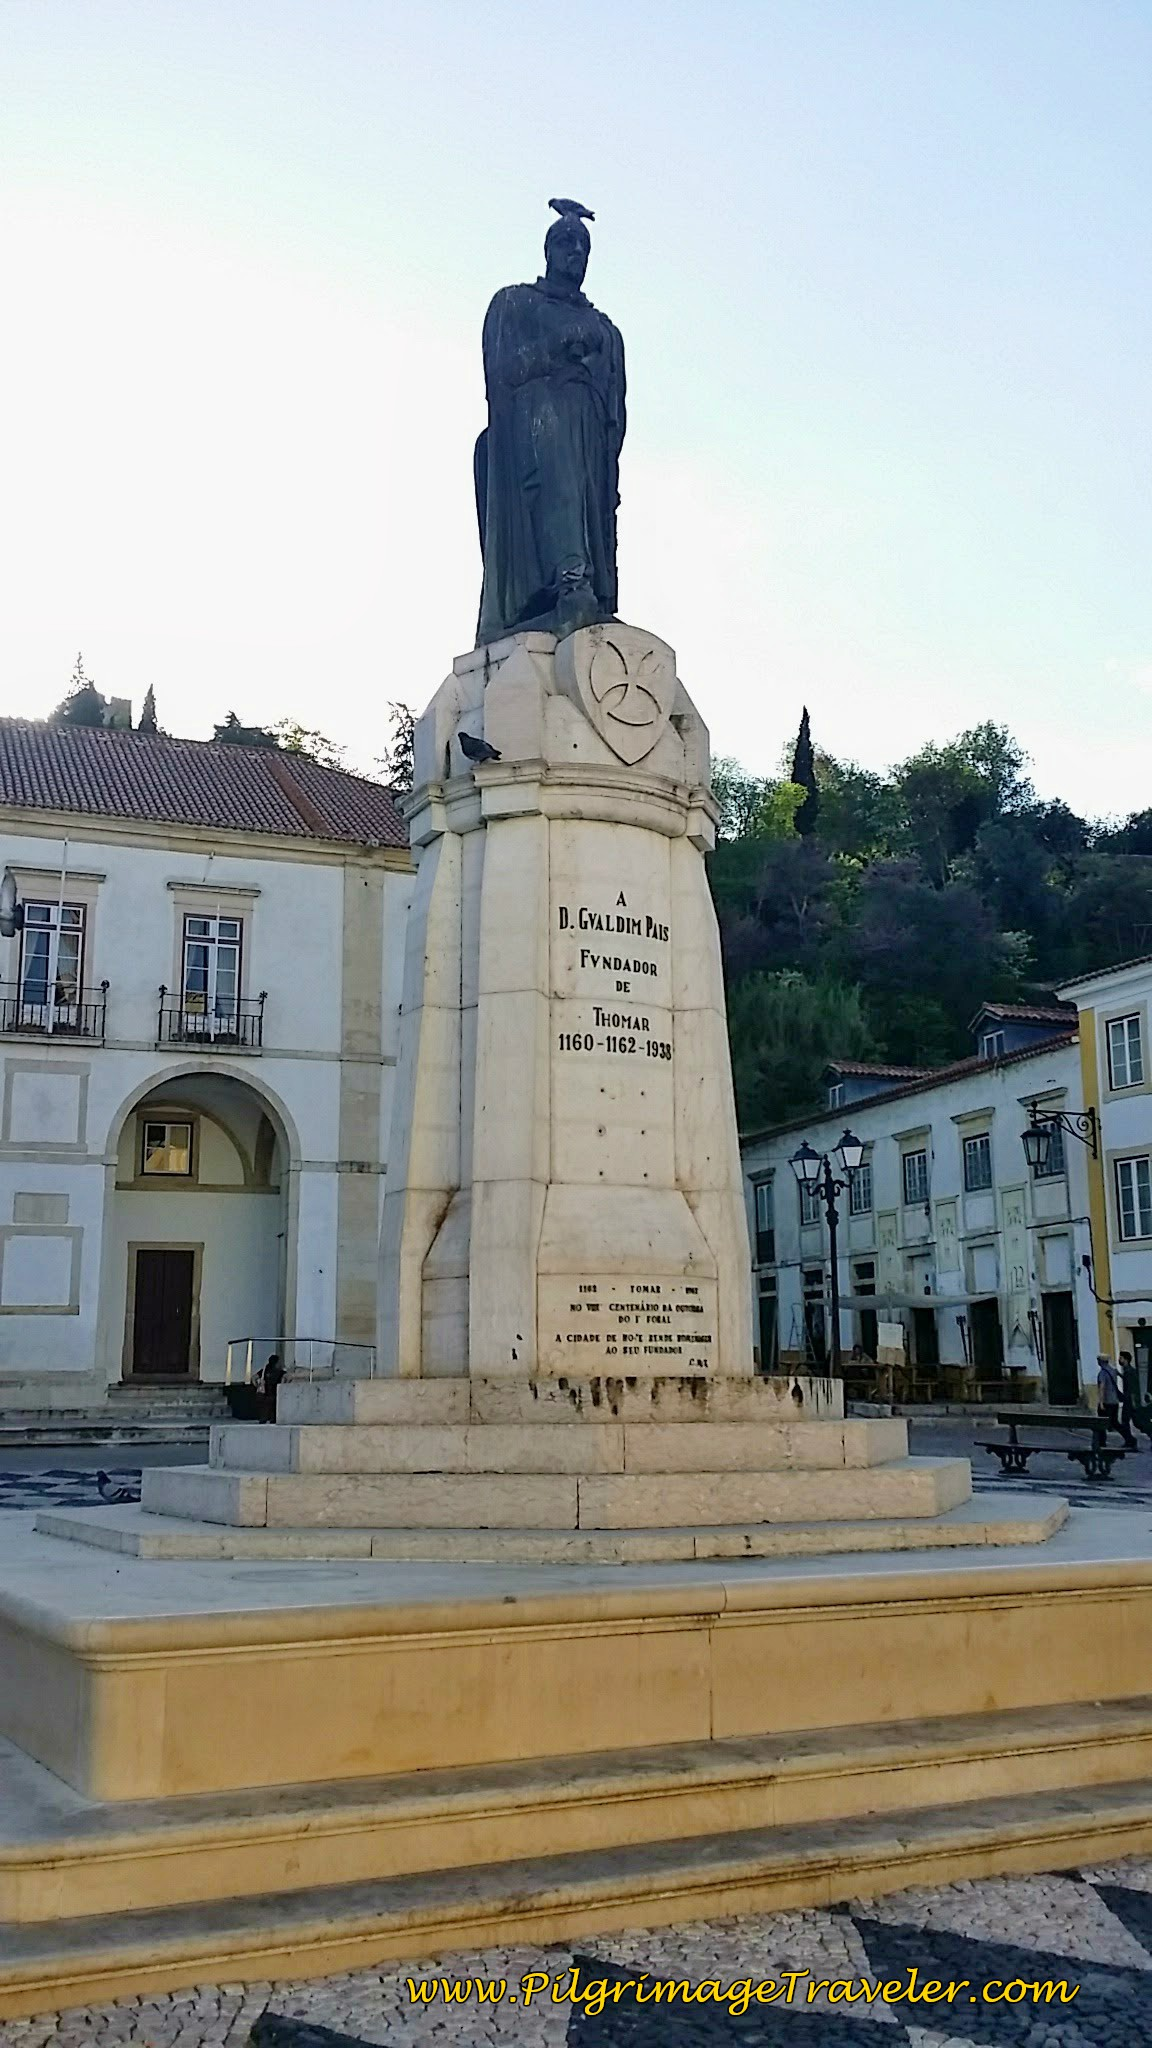 Statue of Gualdim Pais ~ Founder of Tomar, Portugal